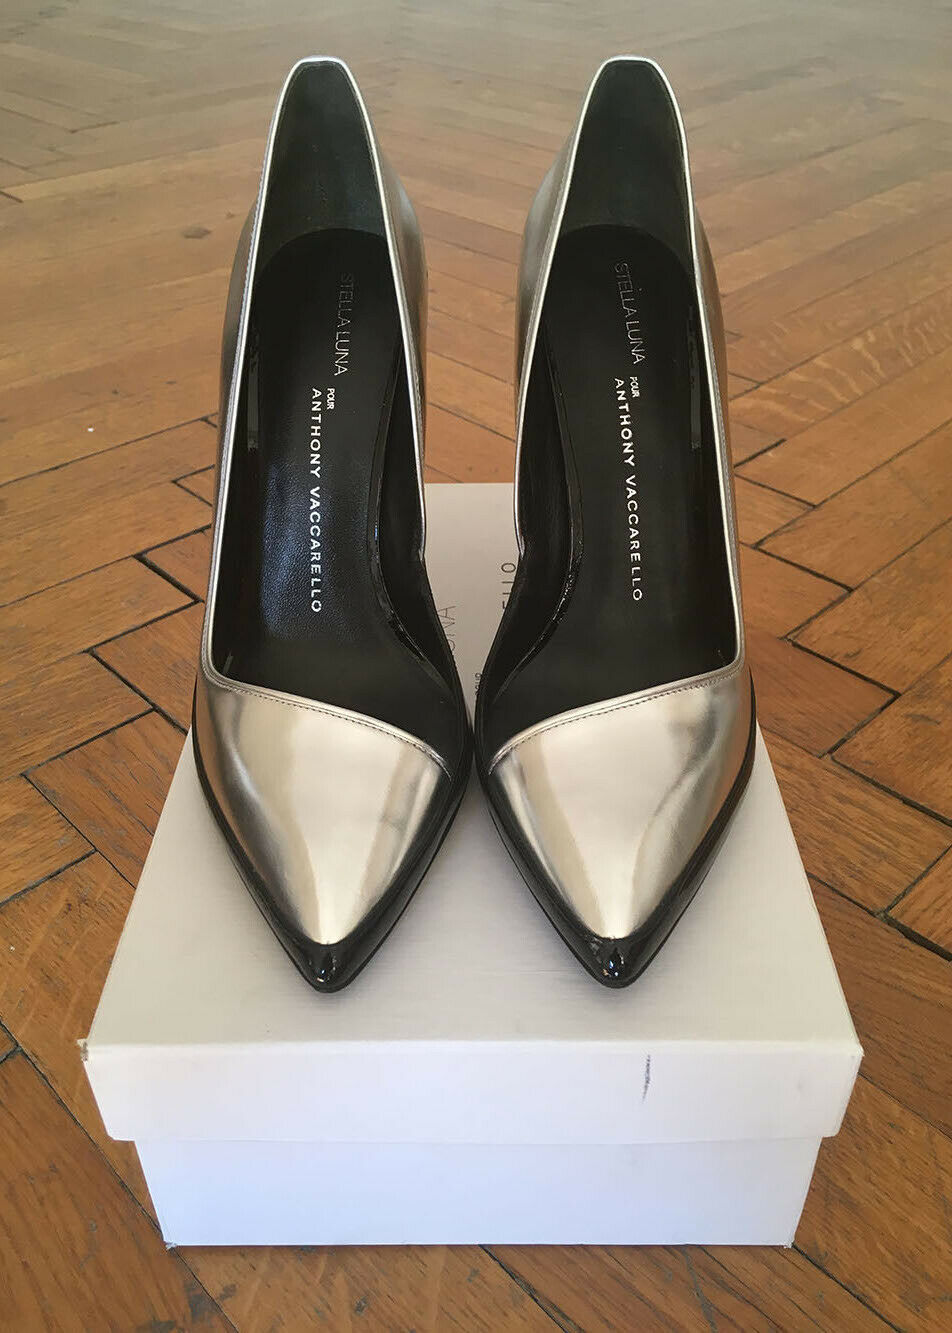 ANTHONY VACCARELLO TWO-TONE TWO-TONE TWO-TONE LEATHER PUMPS - NEW 0e5f16